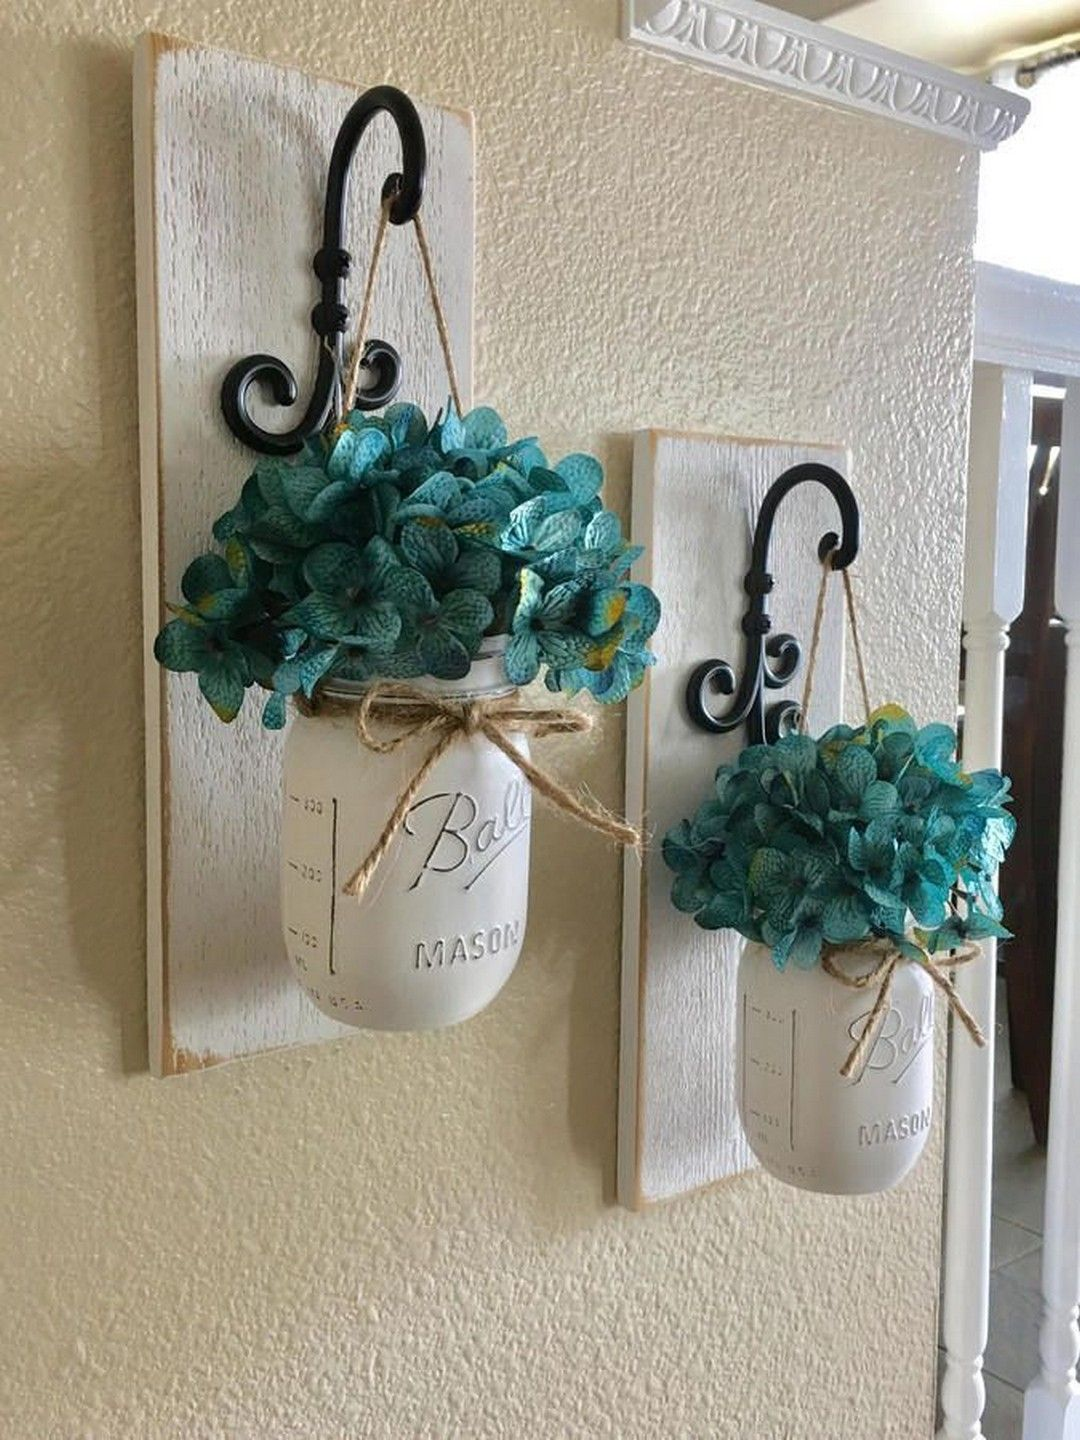 Stunning Hanging Mason Jar Sconces Hand Crafted with The Best Quality - Onechitecture #masonjarbathroom